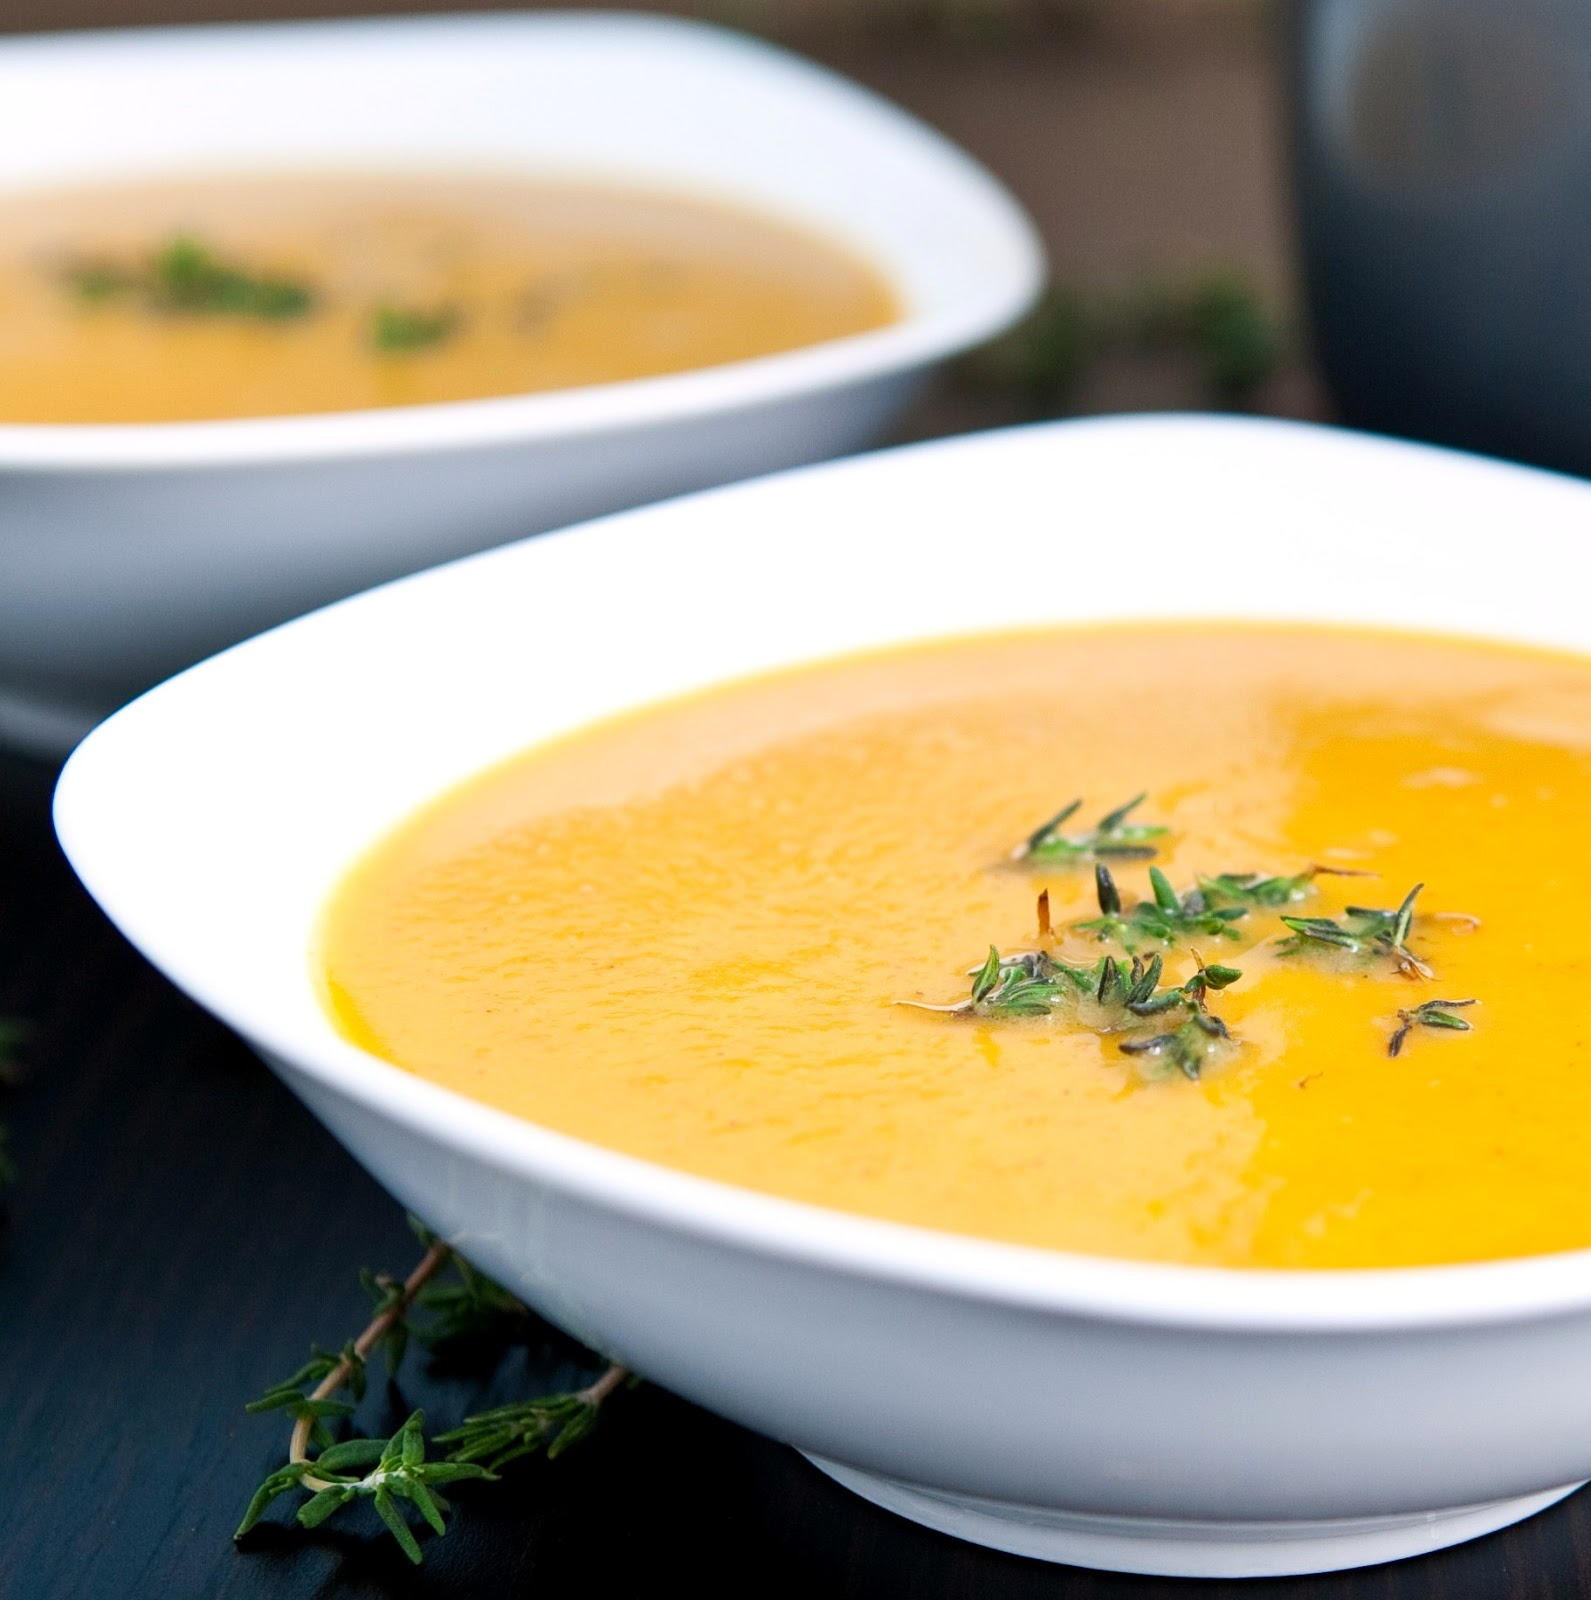 Curried-Butternut-Squash-and-Pear-Soup.jpg